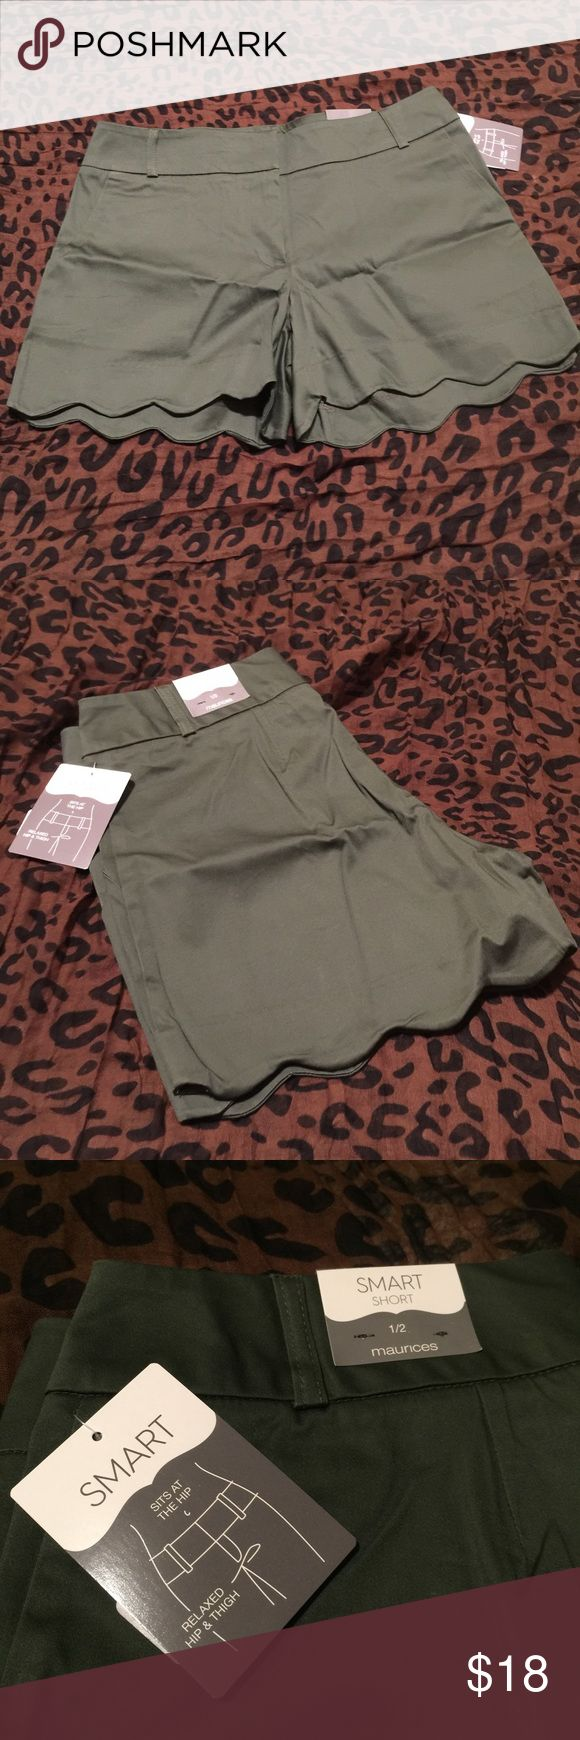 Maurices Smart Shorts NWT the smart shorts in forest fern with scalloped hem Maurices Shorts